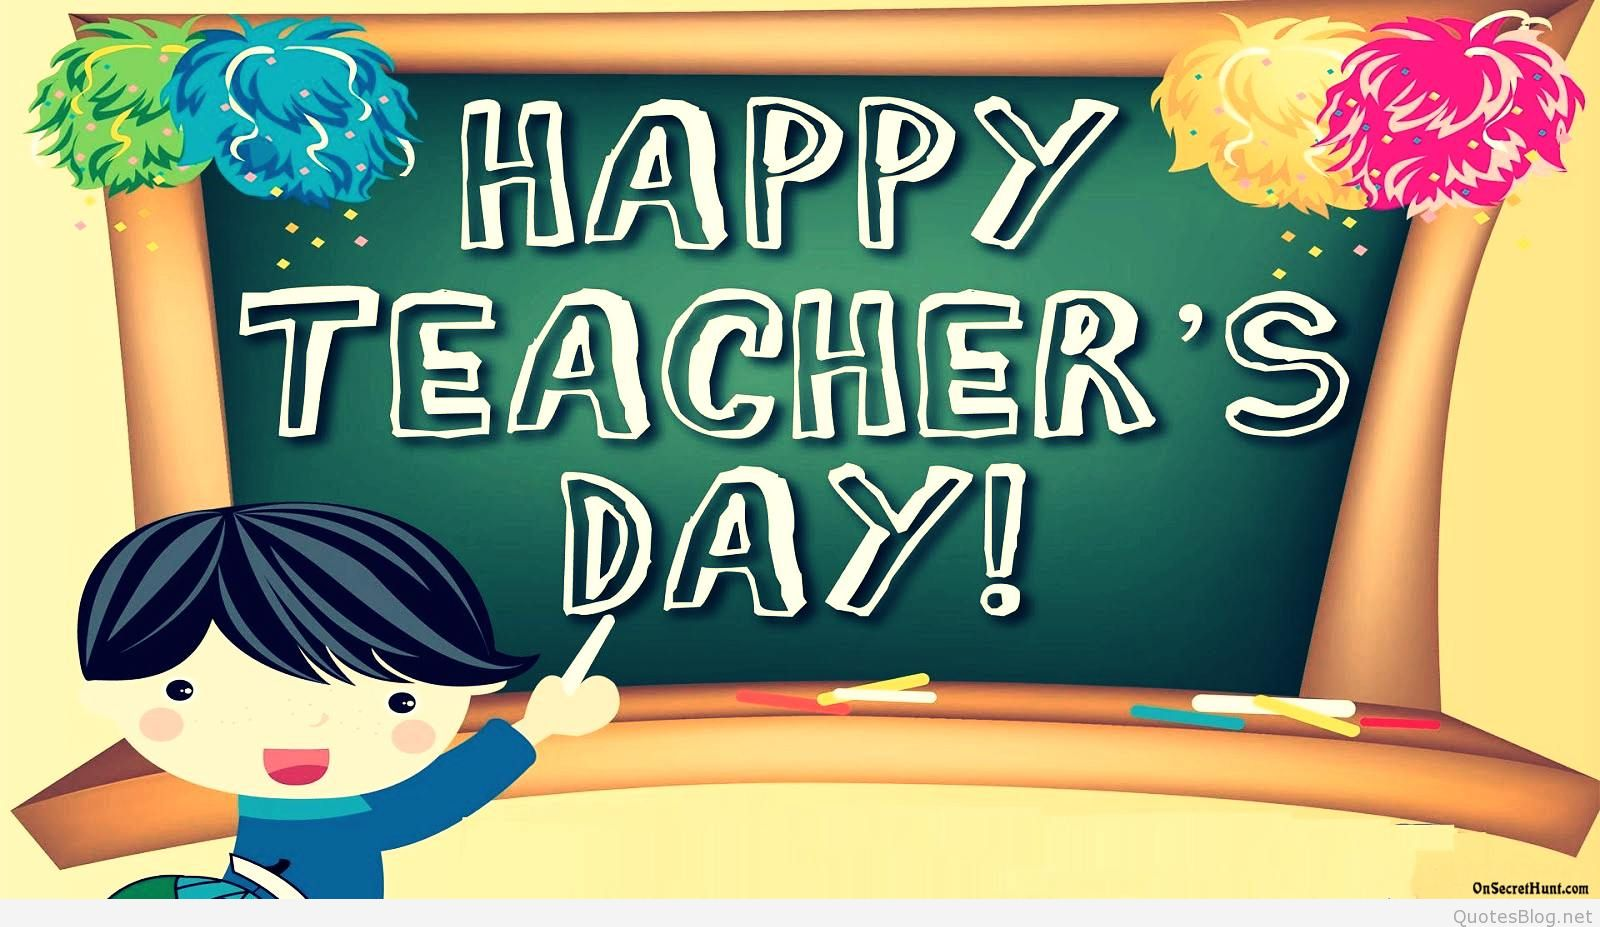 Happy Teachers Day Pictures Messages Cards Wallpapers Quotes 1600x927